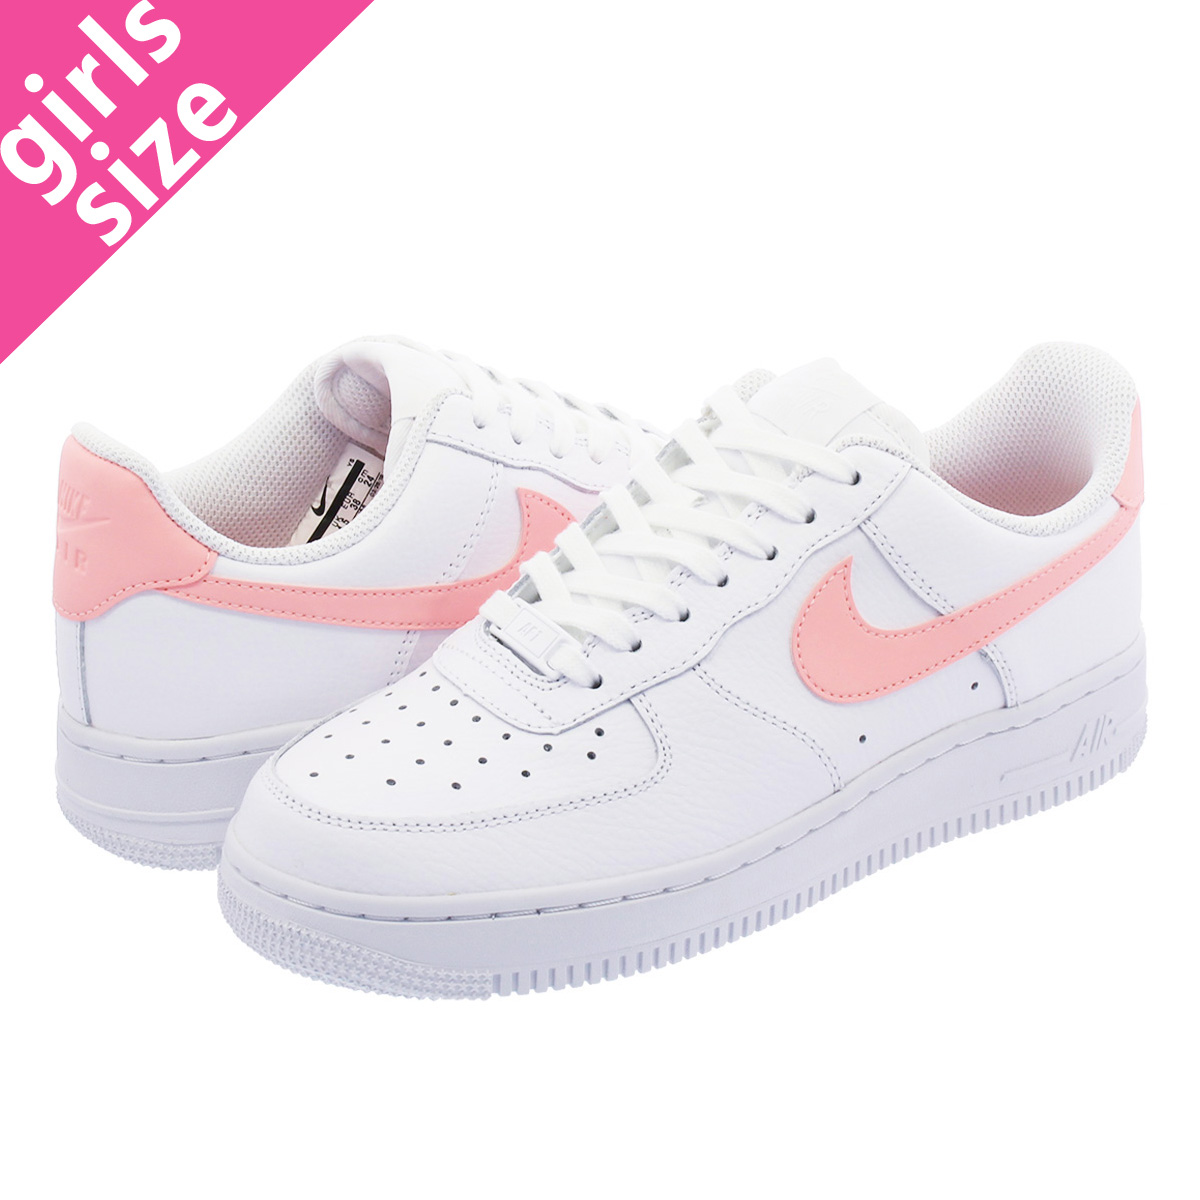 87ad89a5eb NIKE WMNS AIR FORCE 1 07 Nike women air force 1 07 WHITE/ORACLE PINK/WHITE  ah0287-102-l